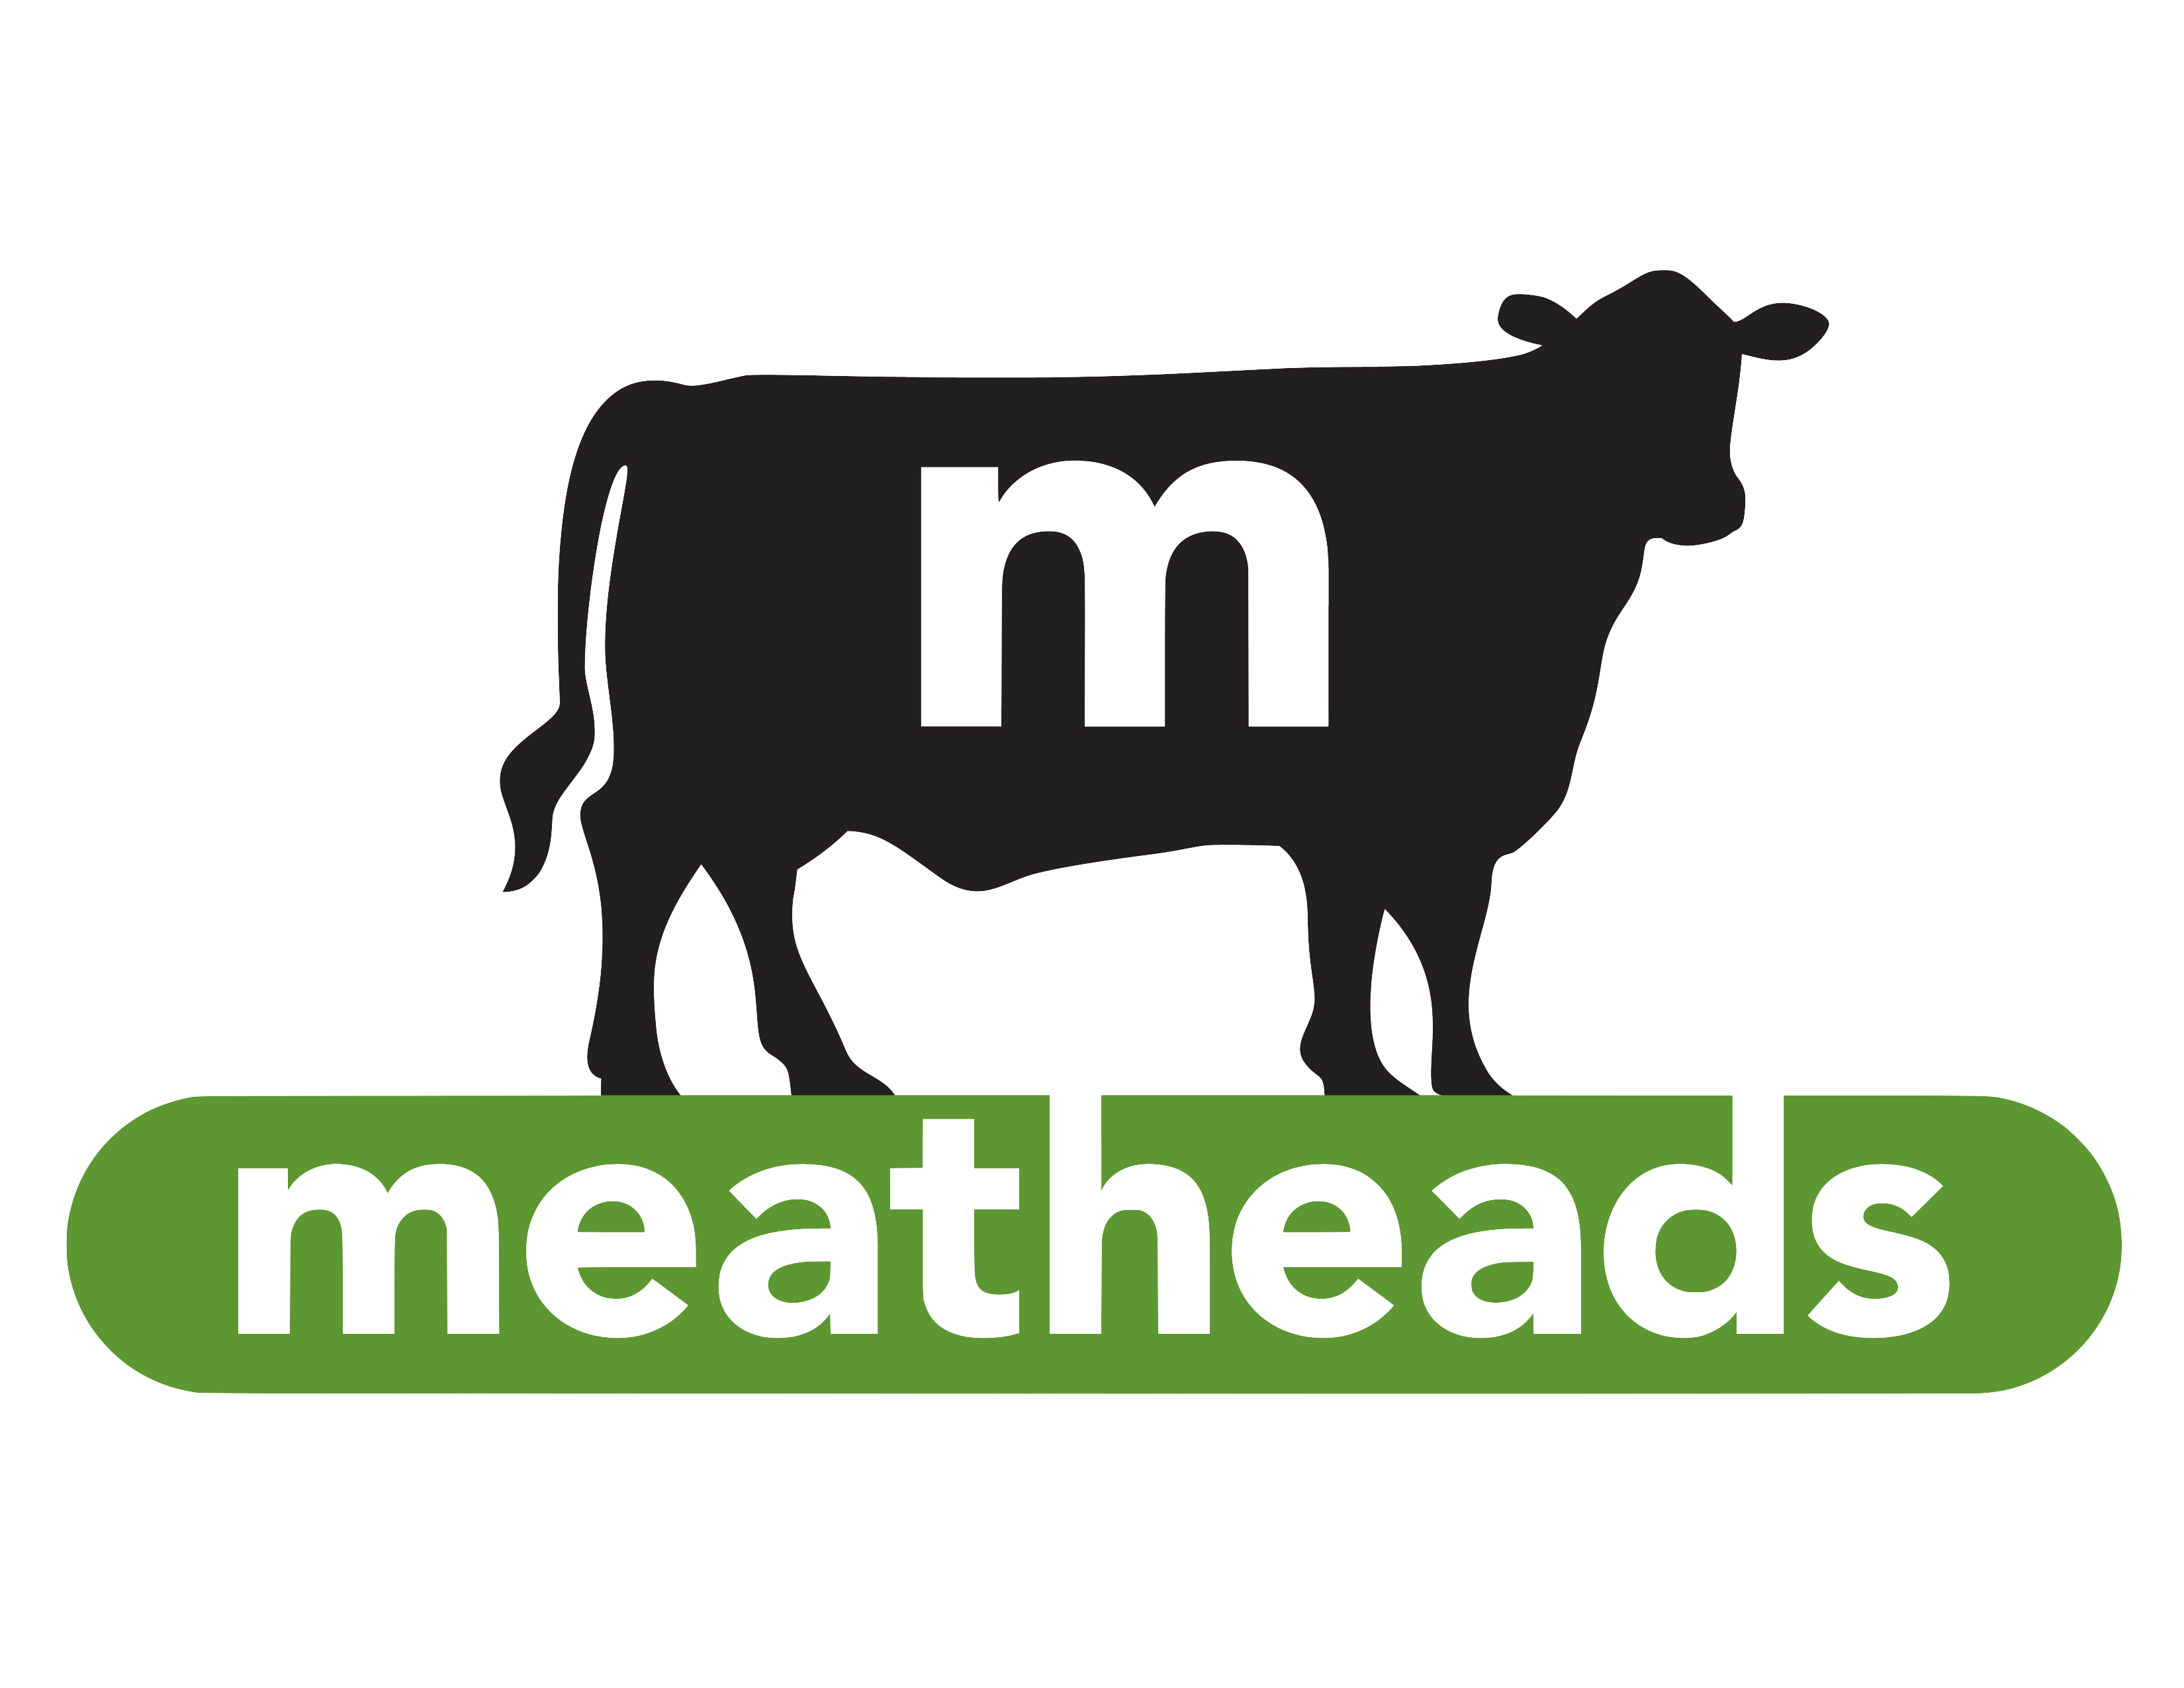 meatheads-green-logo